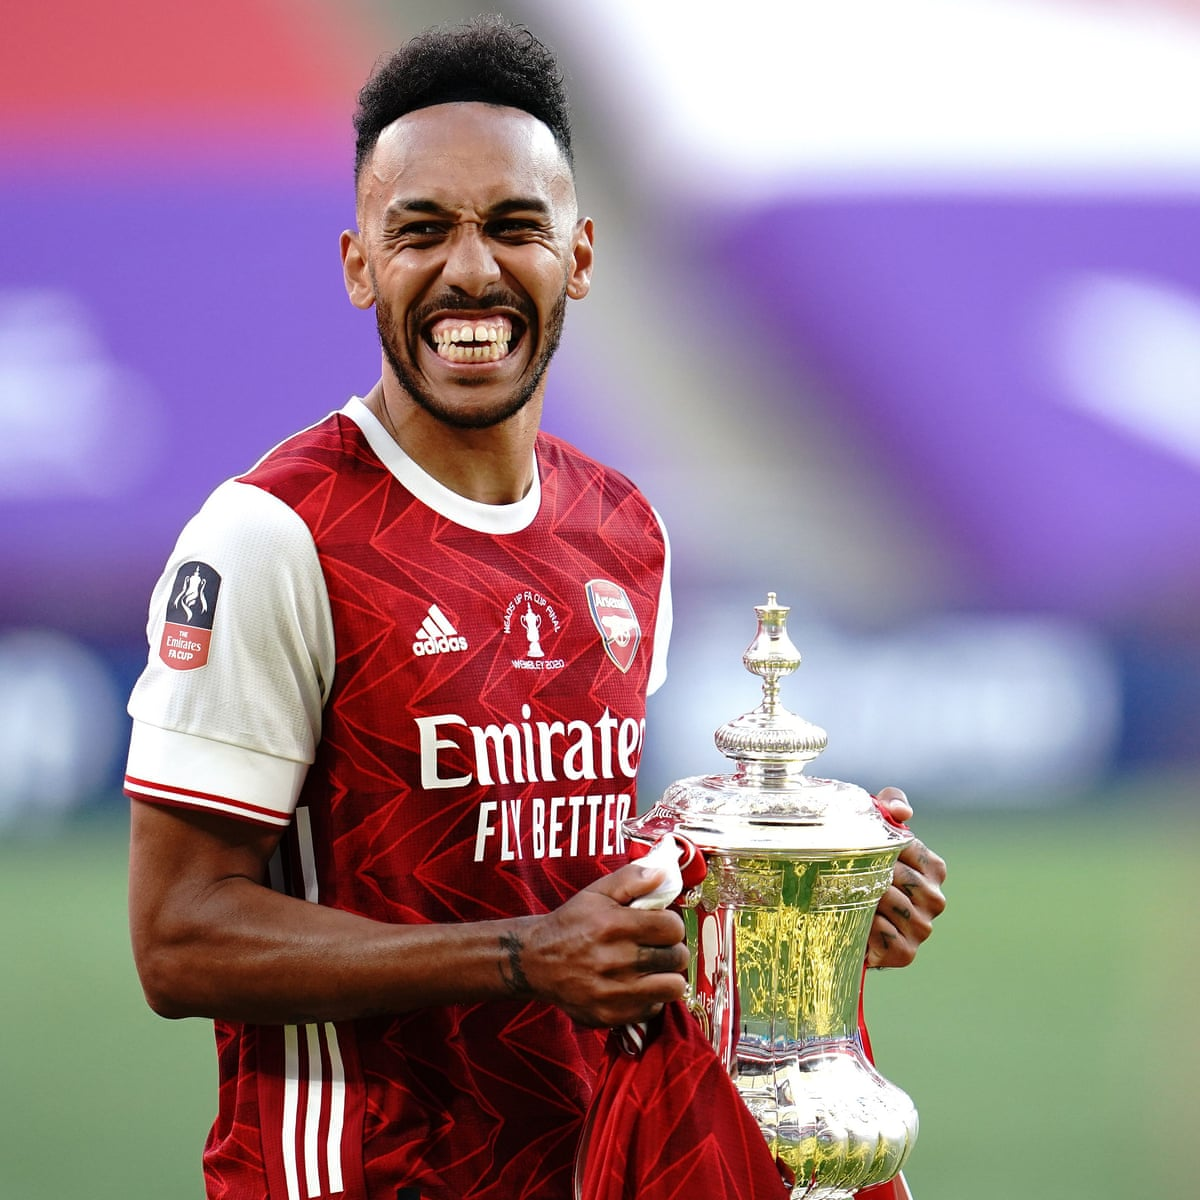 Aubameyang Out For Arsenal Redemption After A Tough Season